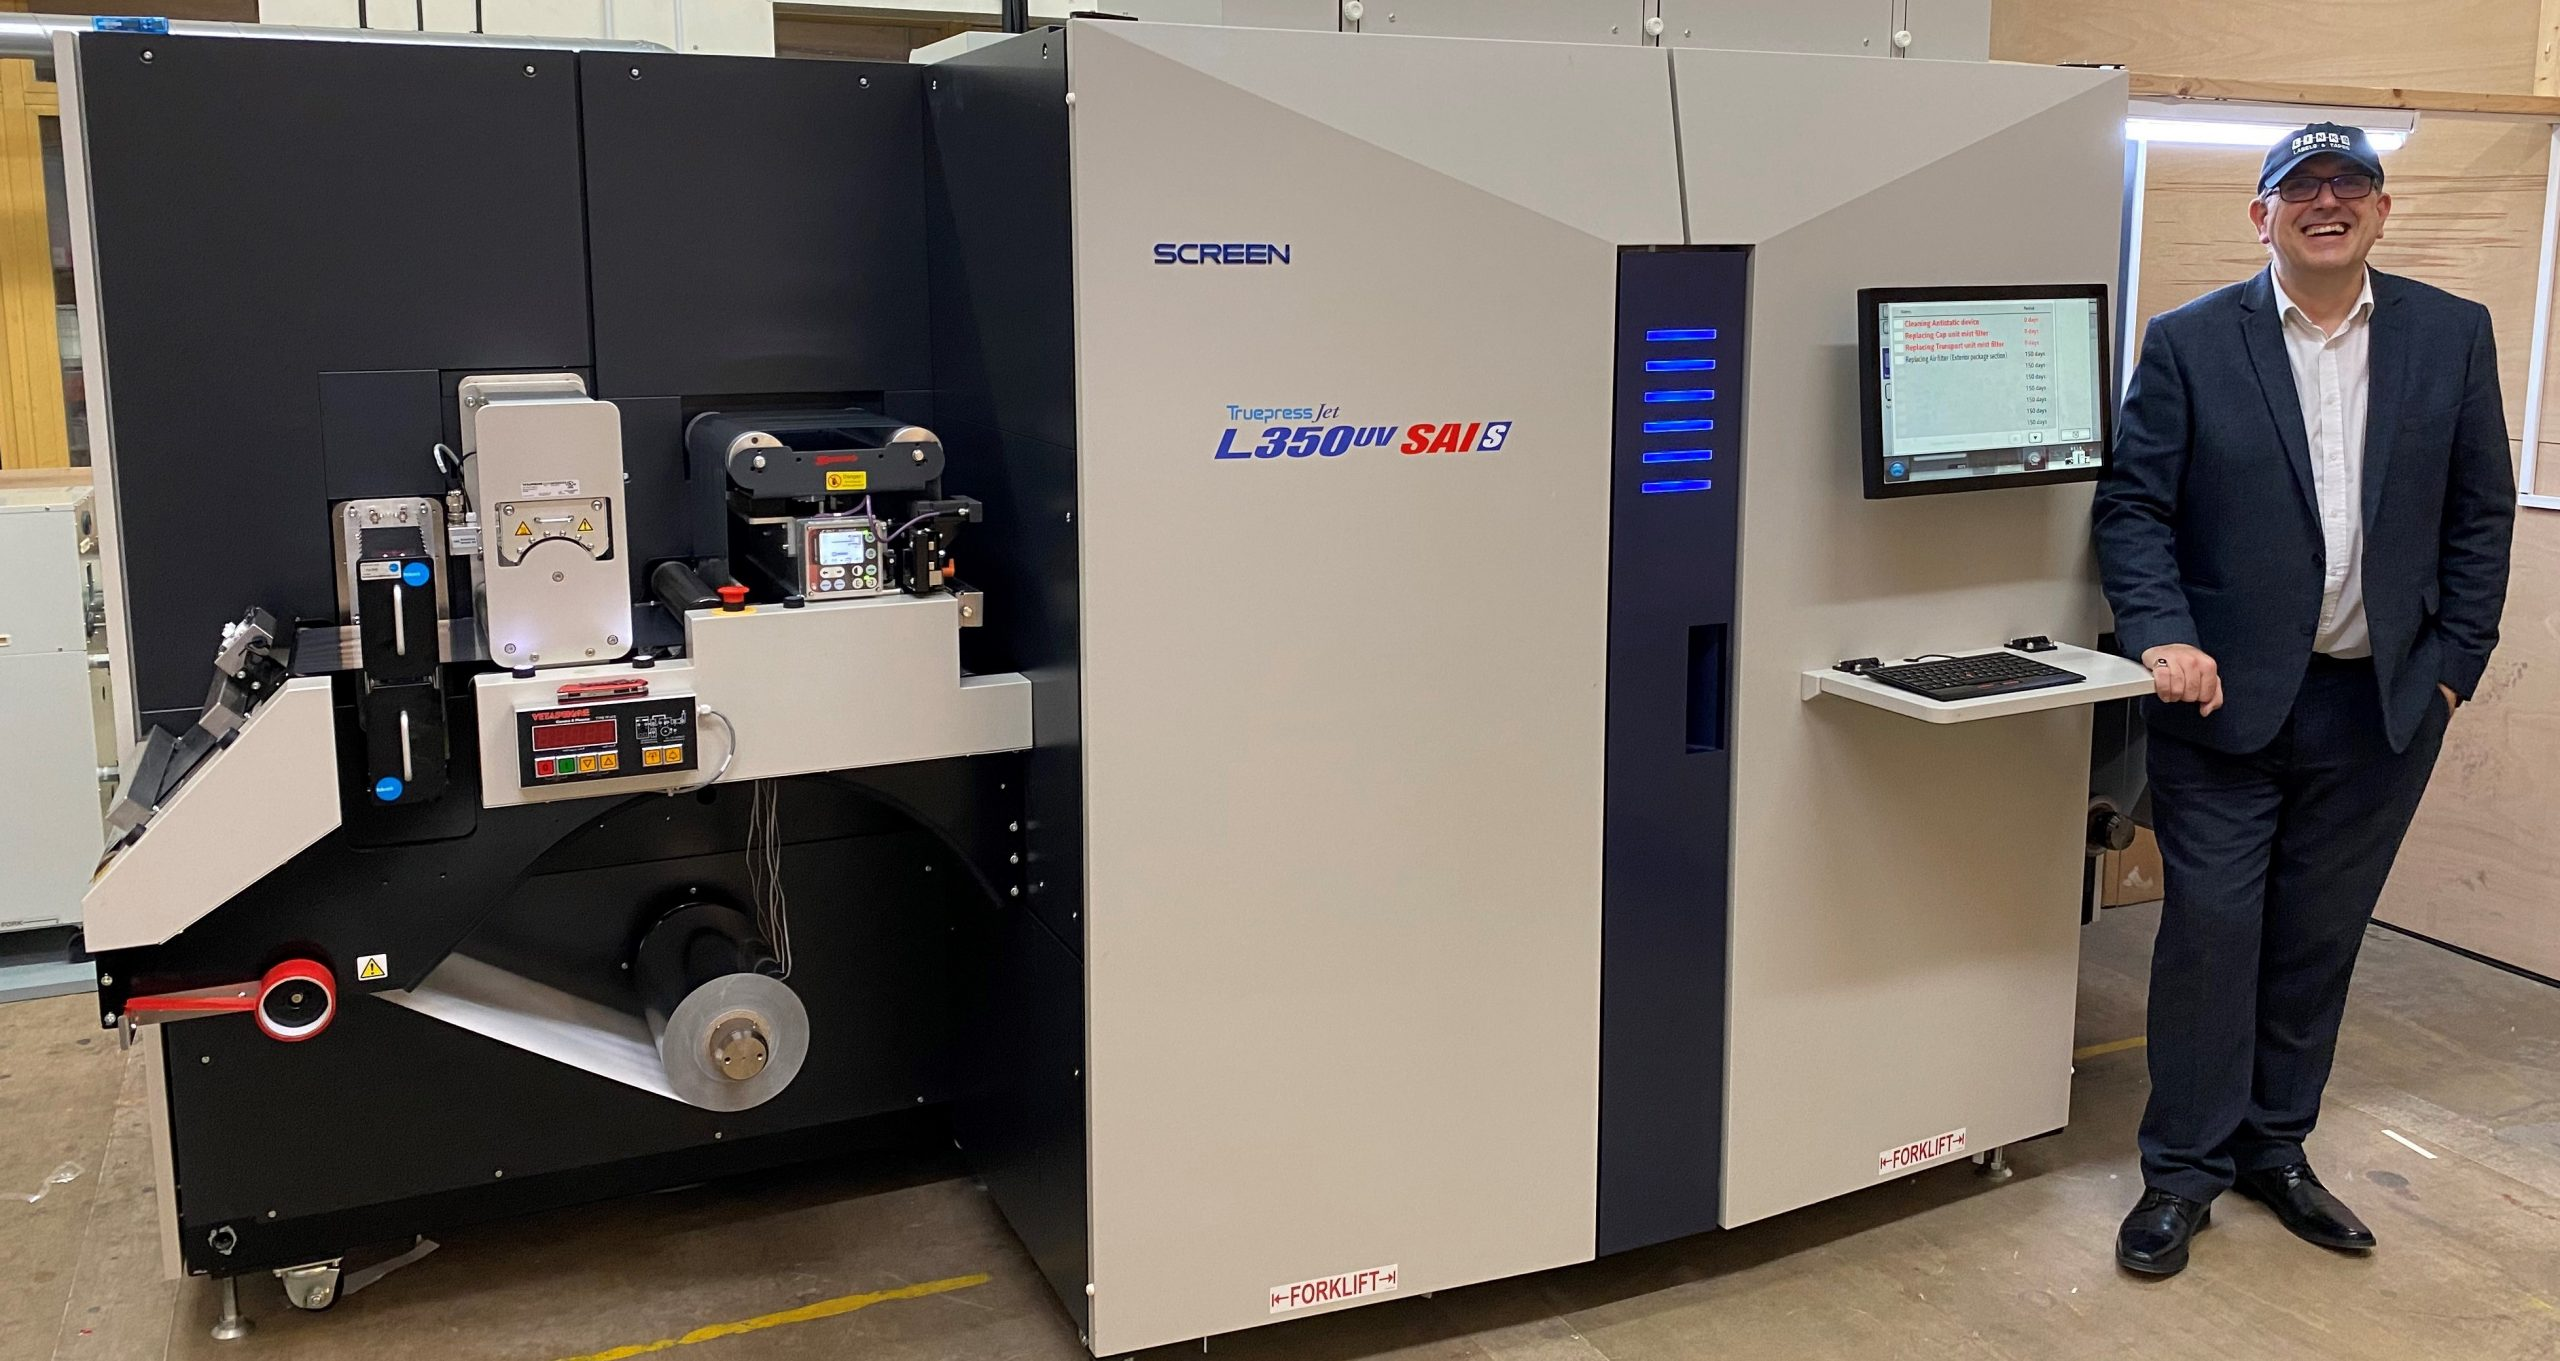 Image from Links Labels & Tapes responds to a market need for shorter lead times by investing in Screen's Truepress SAI S 5-colour